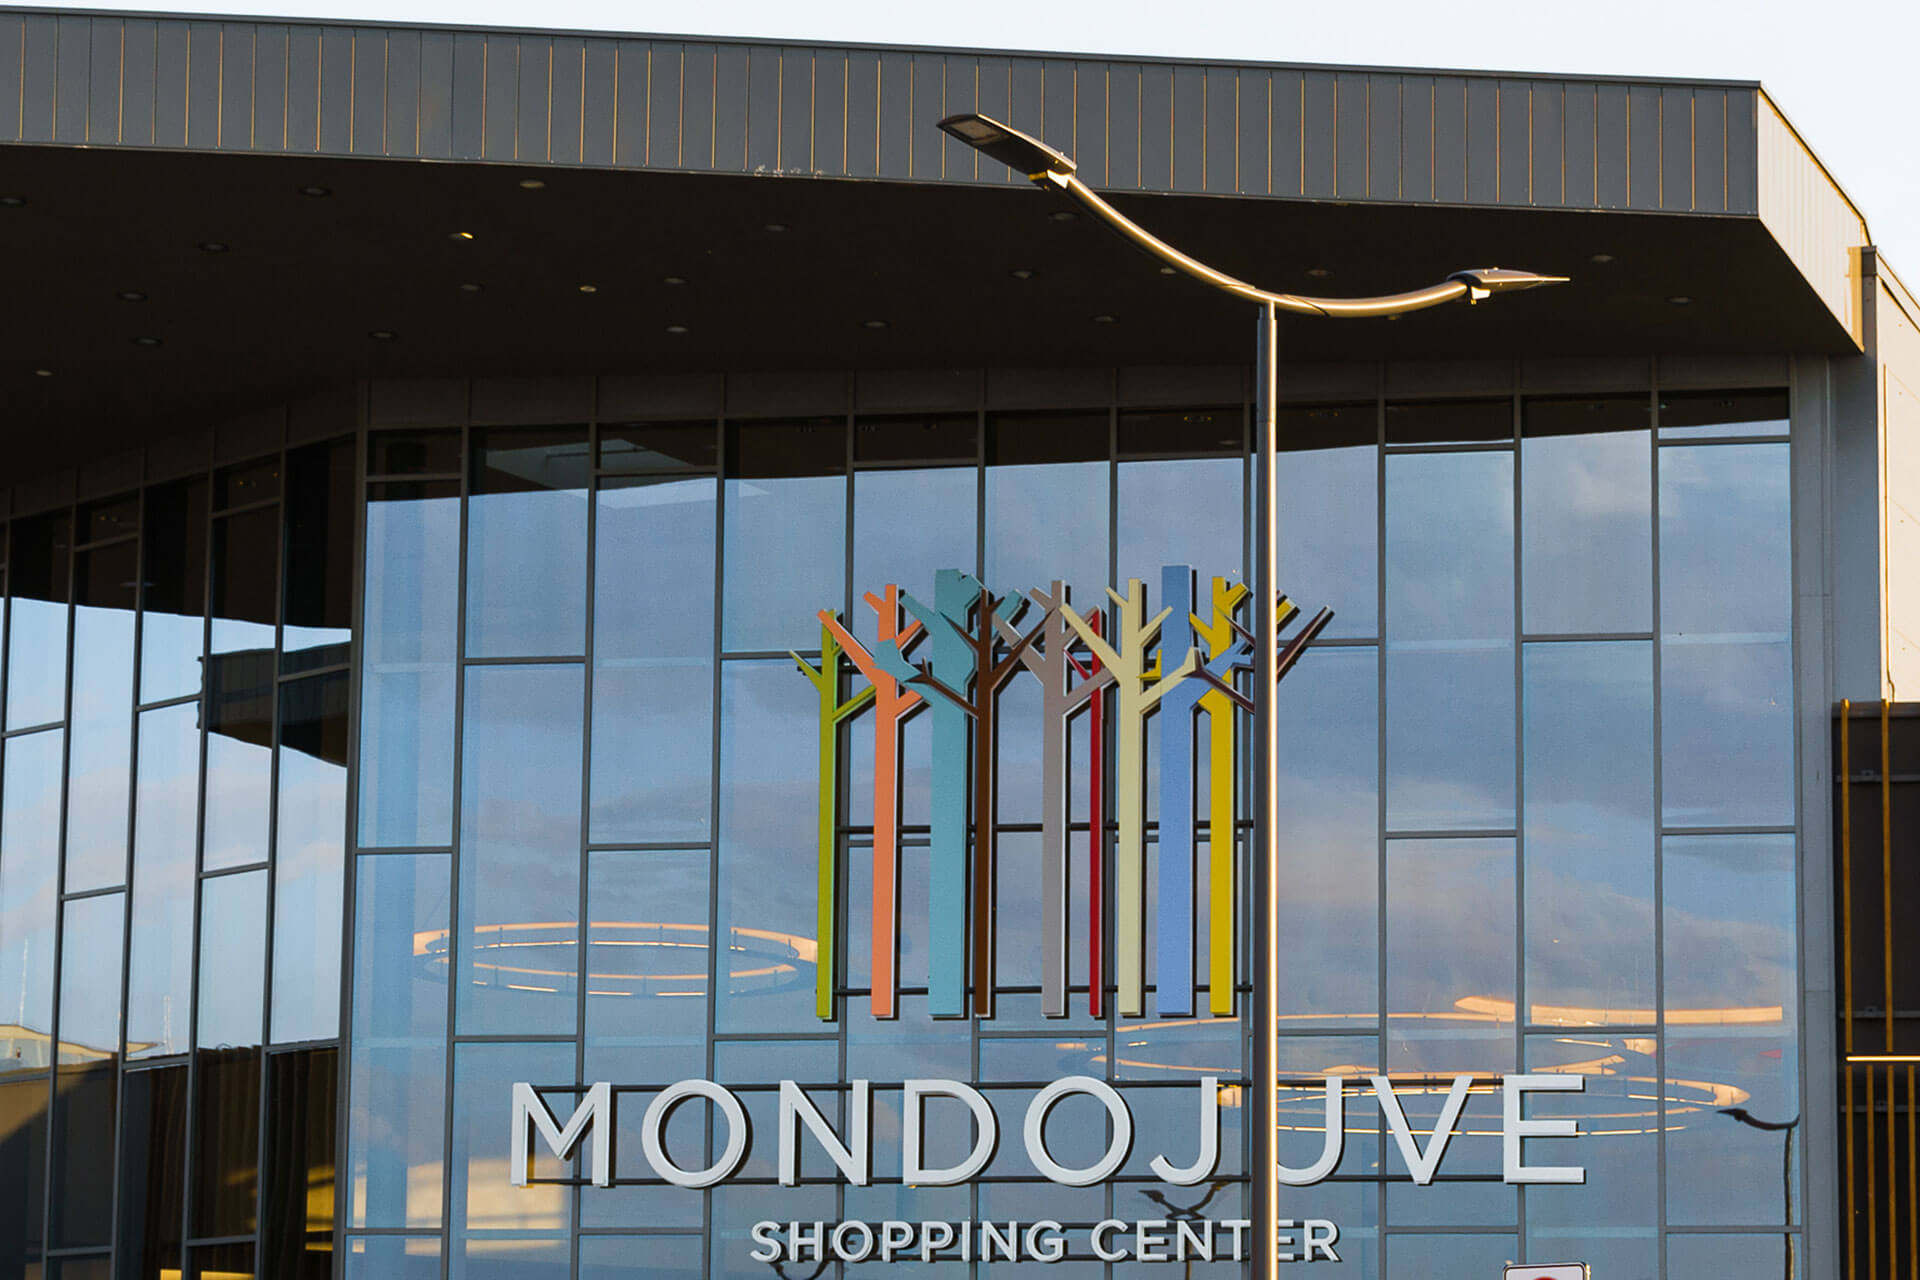 Axia 2 LED lighting solution perfectly compliments the high tech design of Mondojuve shopping centre